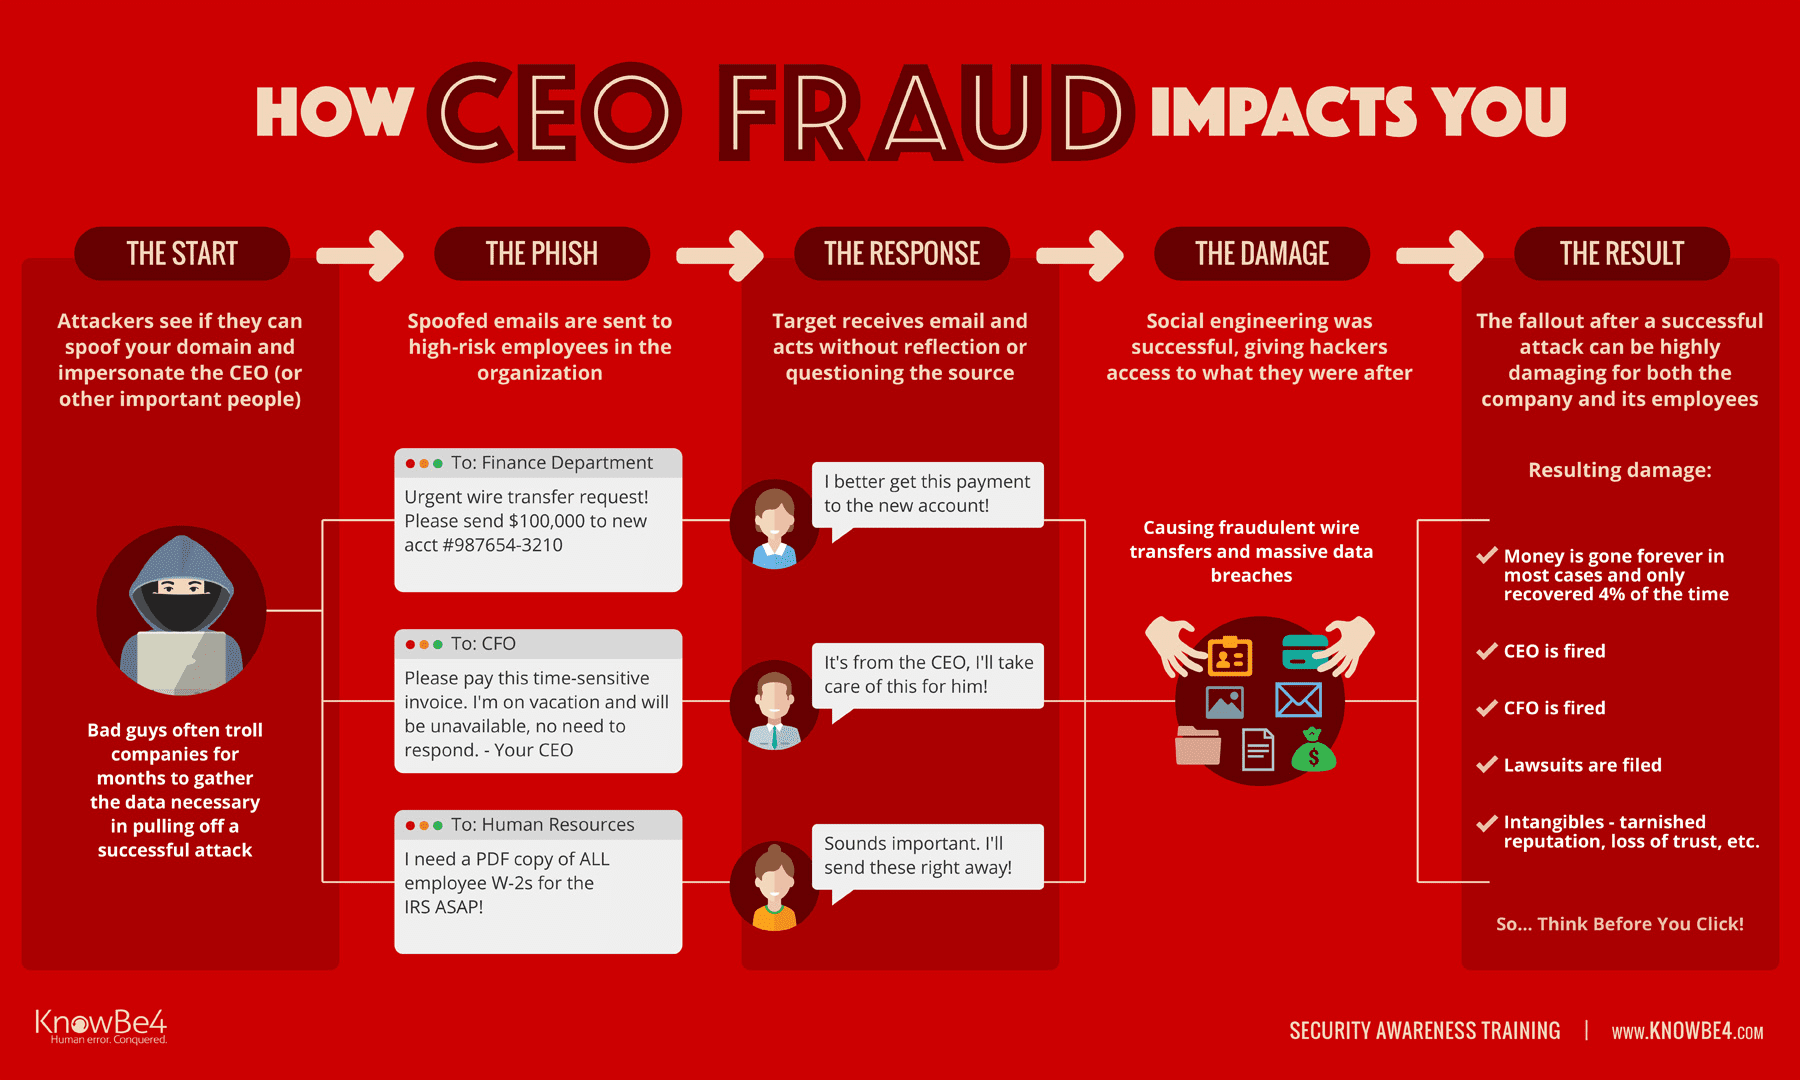 how CEO fraud impacts you graphic